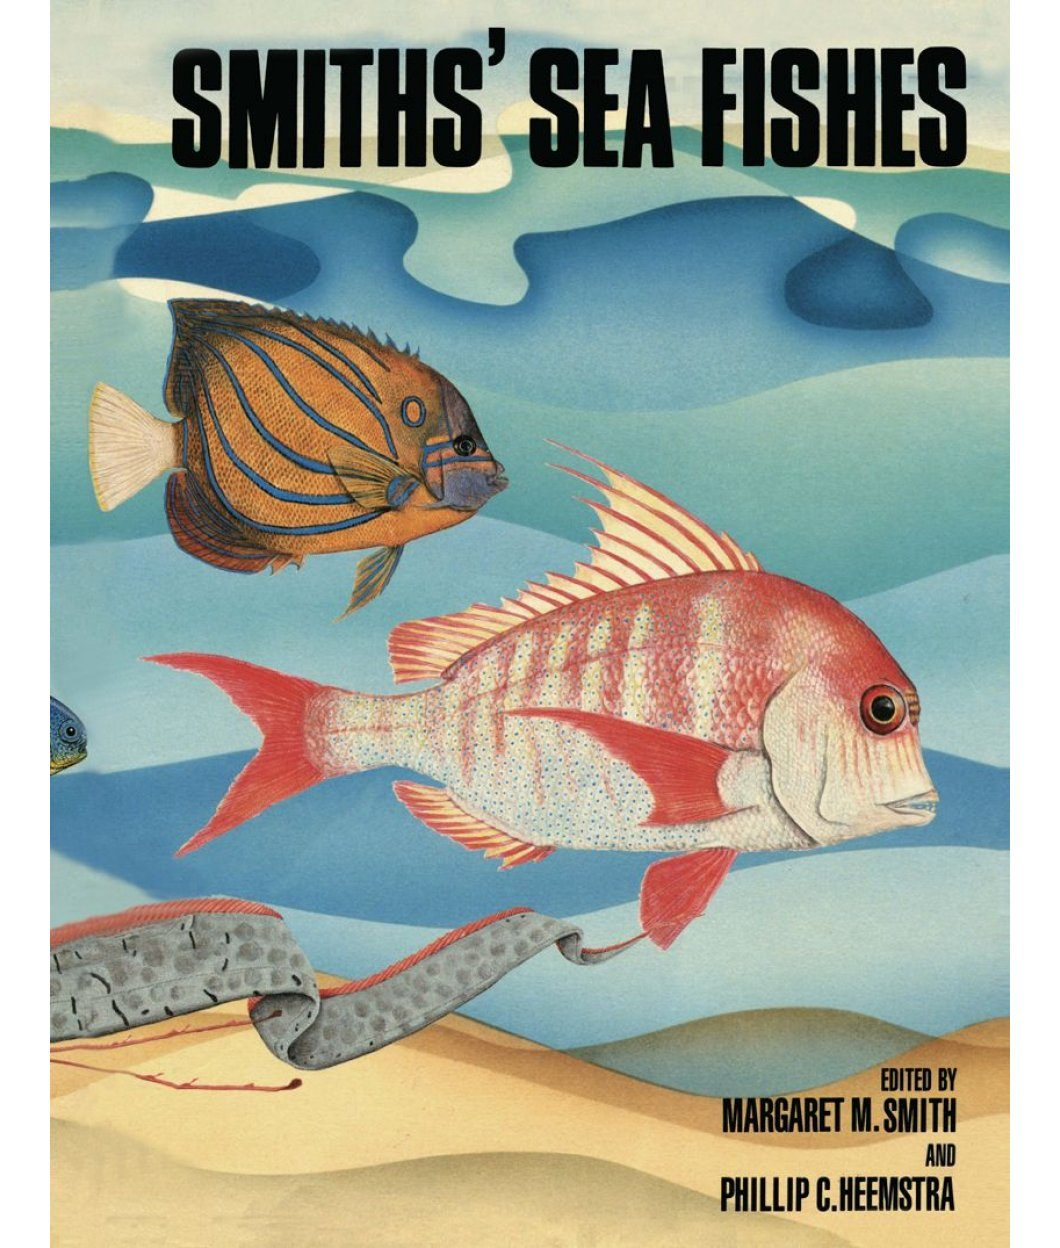 Smiths' Sea Fishes